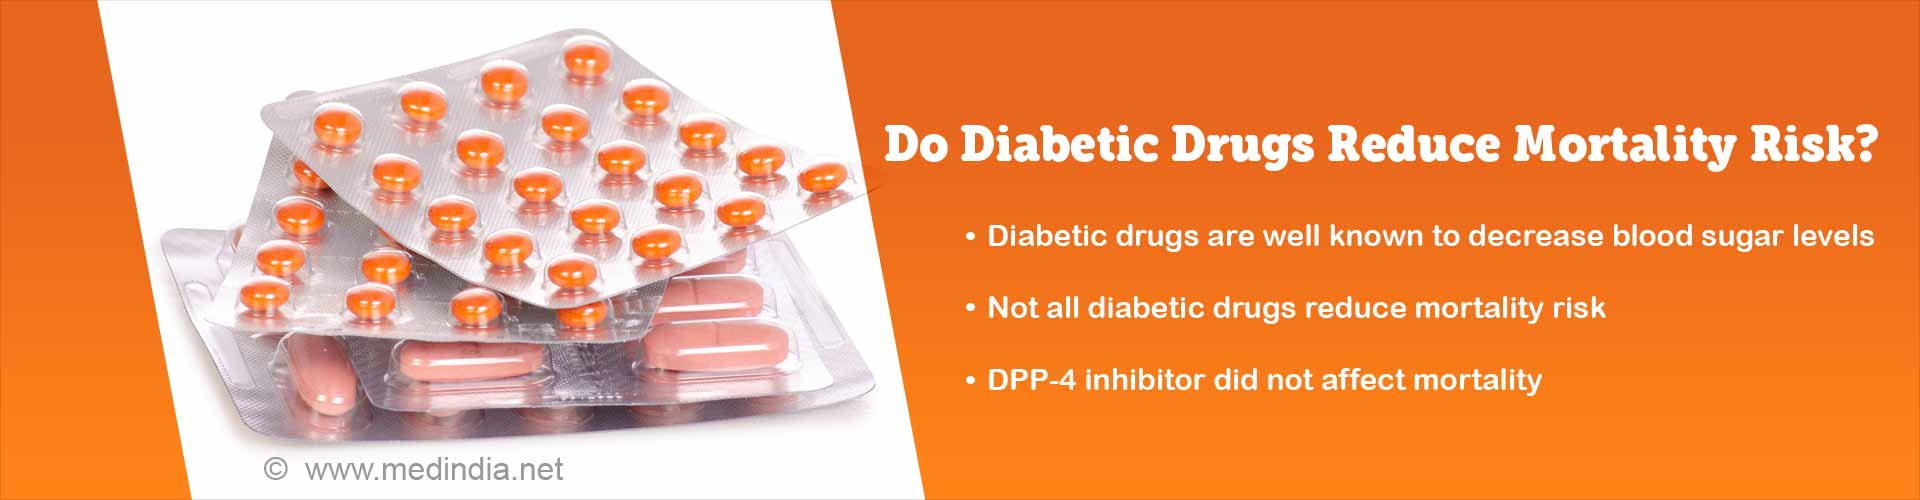 Not All Diabetes Medications Reduce Mortality Risk